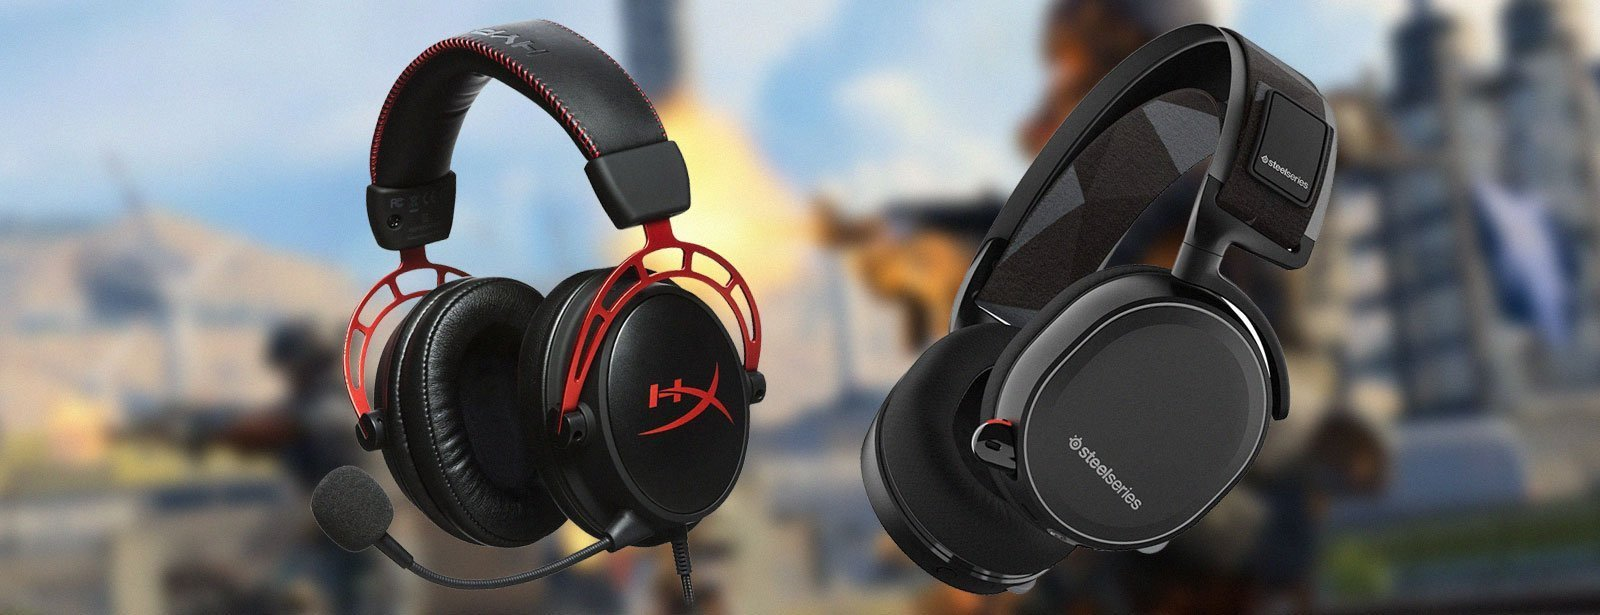 Best Headset for Call of Duty: Black Ops 4 Blackout (August 2019)